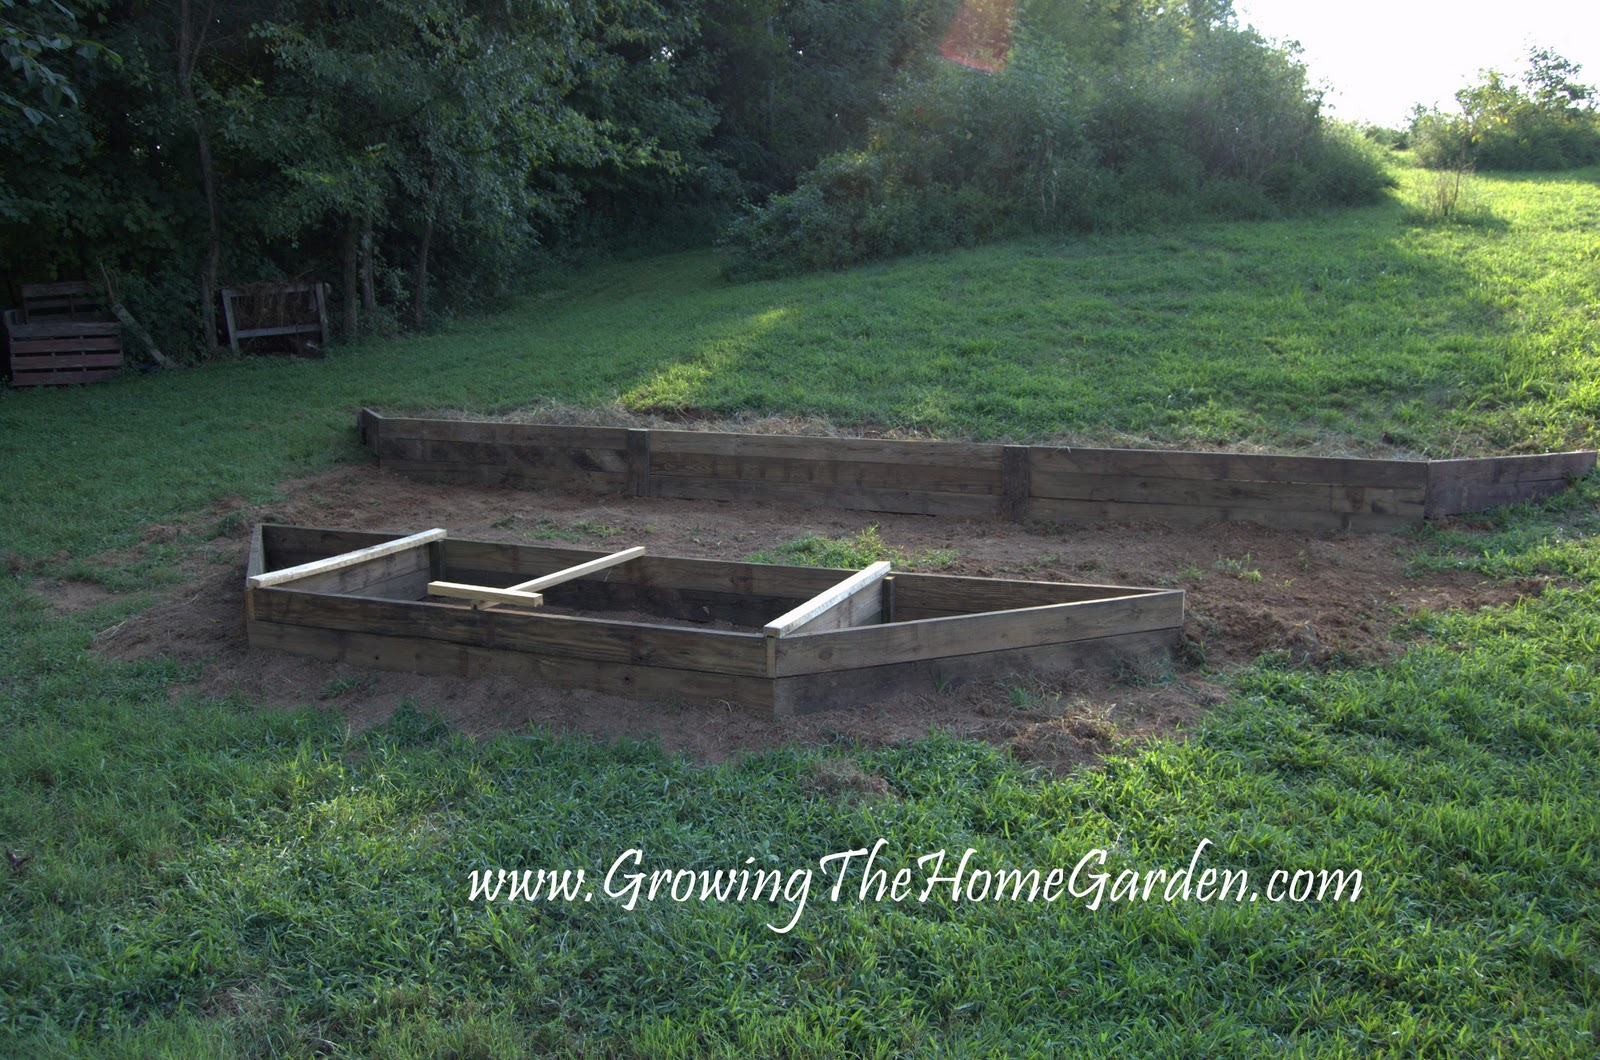 Another Raised Bed This Time on a Slope Growing The